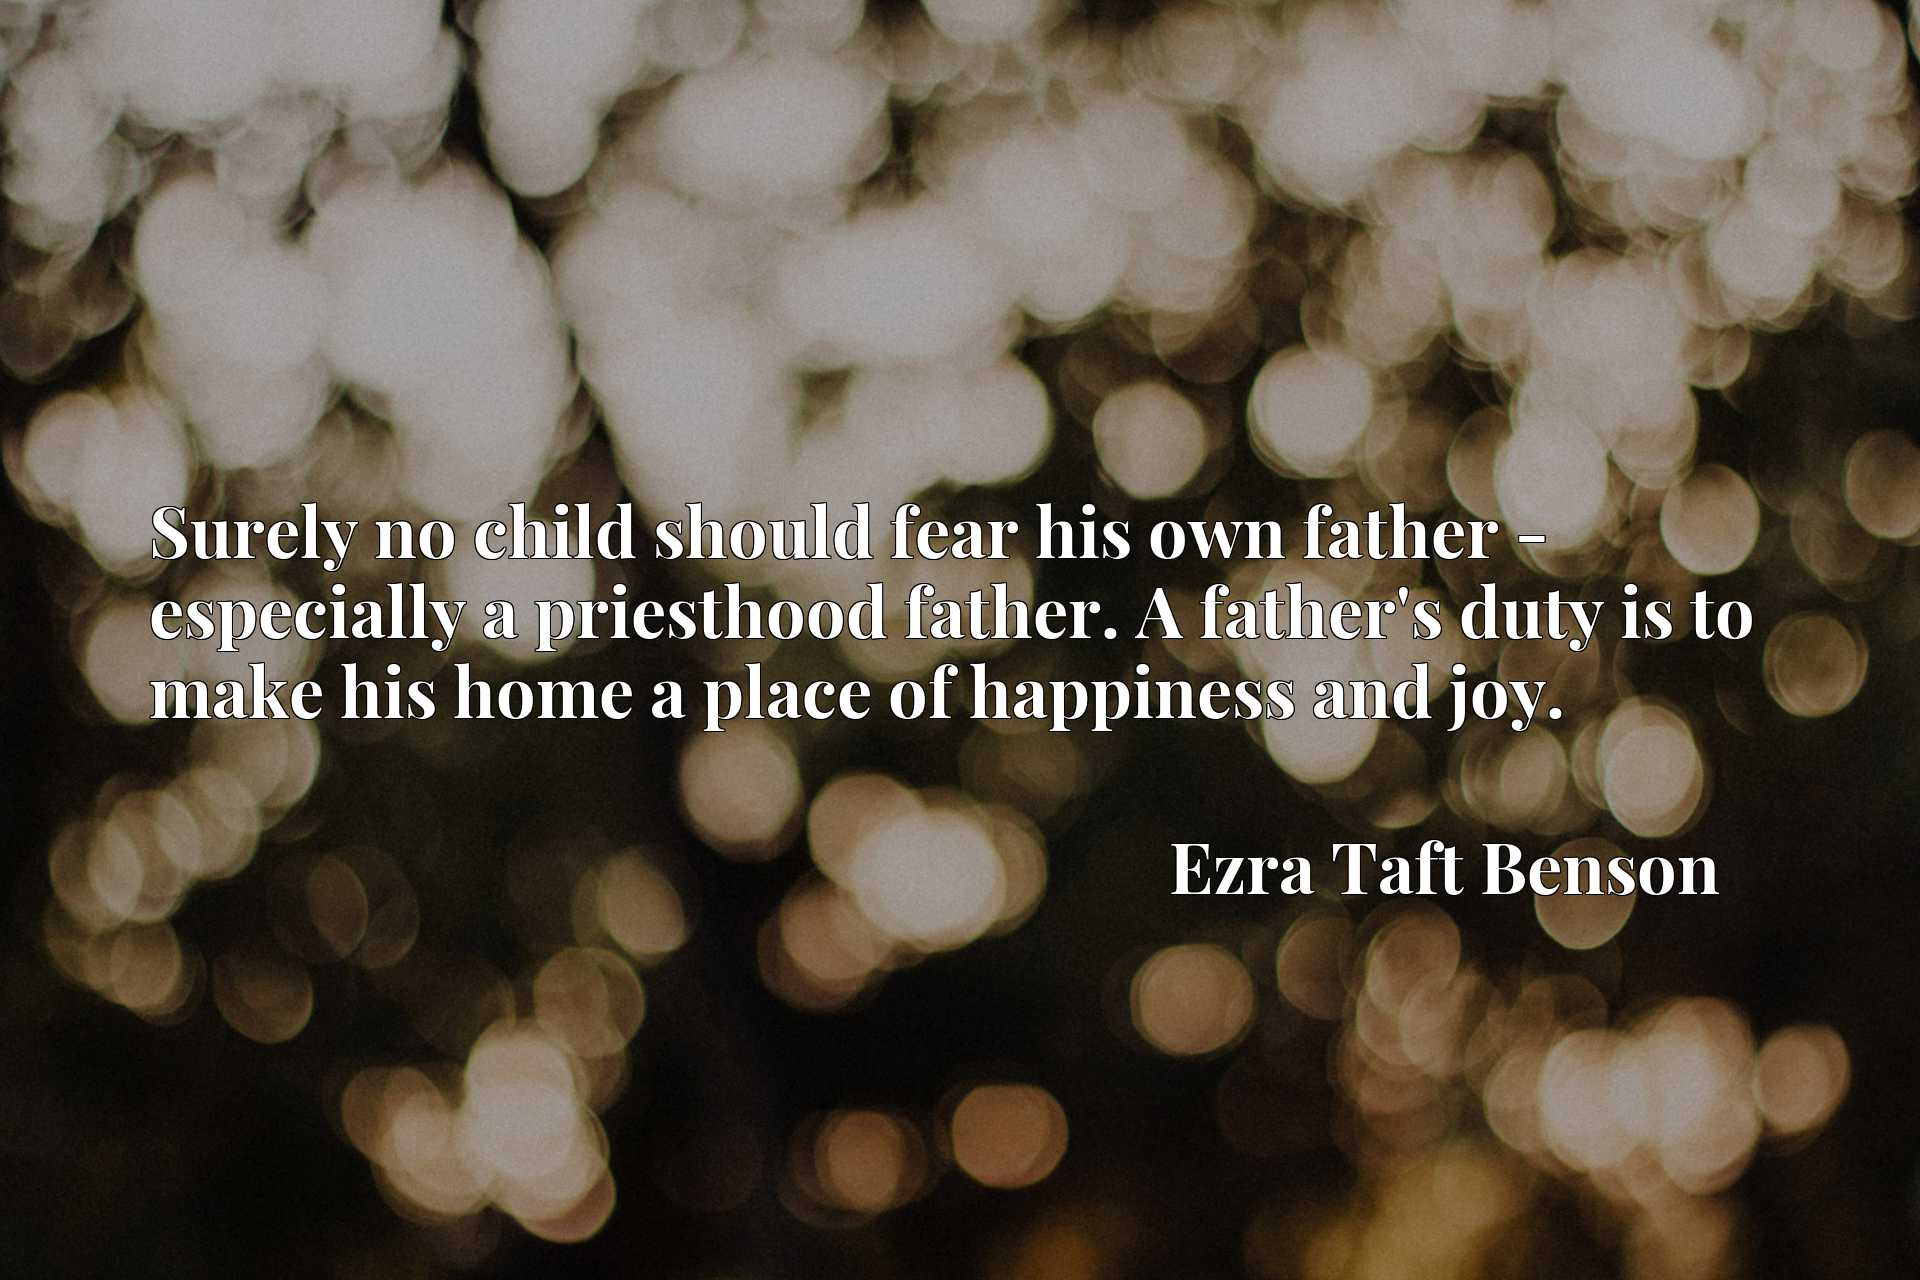 Surely no child should fear his own father - especially a priesthood father. A father's duty is to make his home a place of happiness and joy.